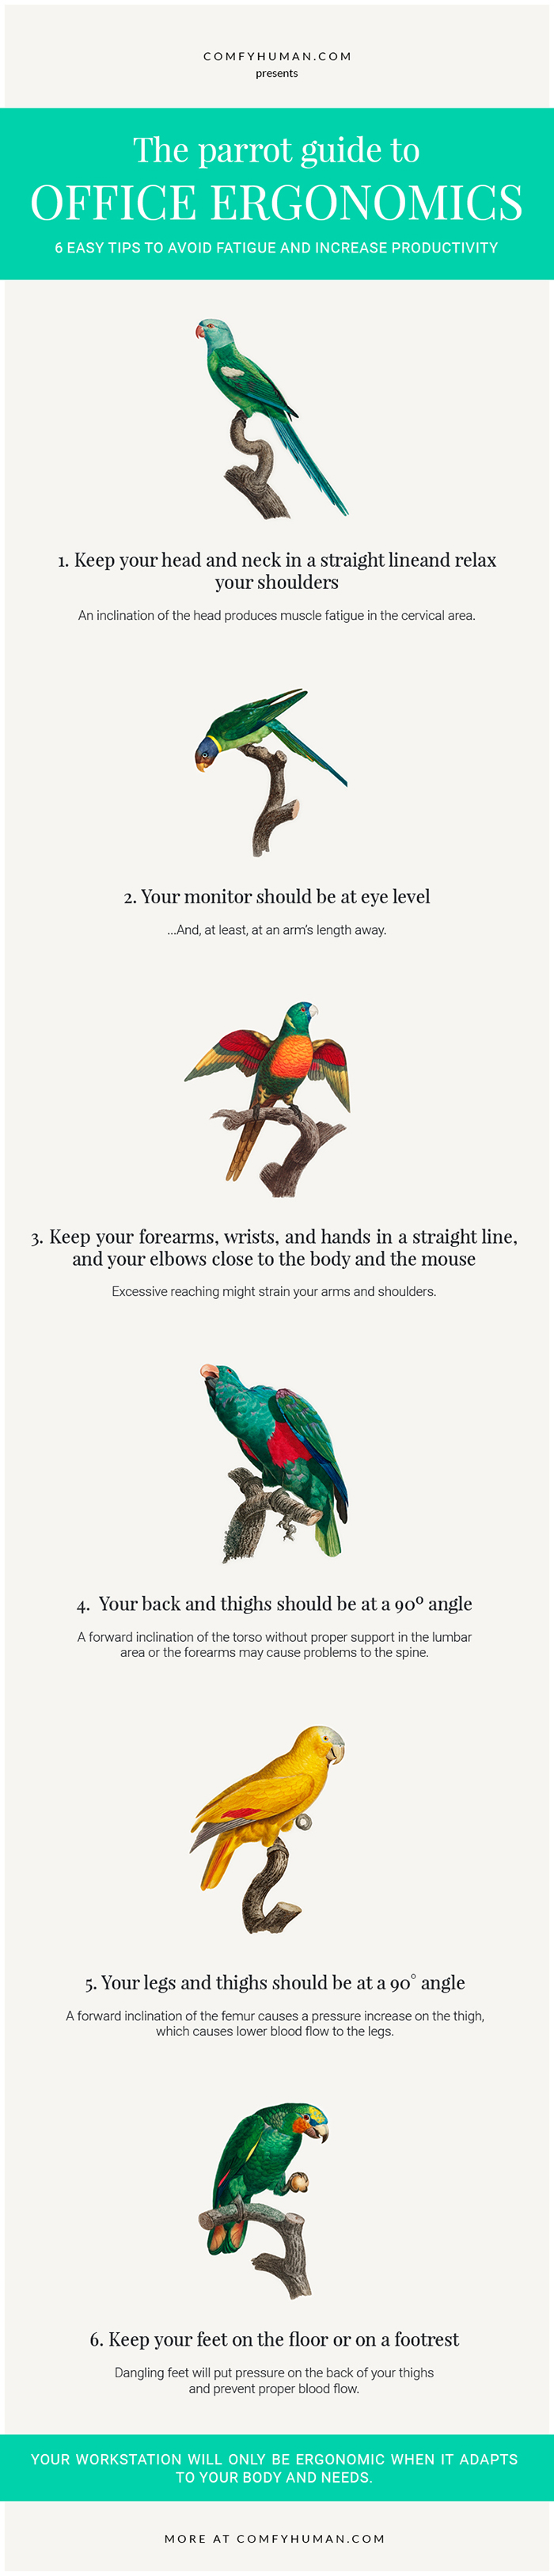 """""""The Parrot Guide to Office Ergonomics"""" Infographic"""